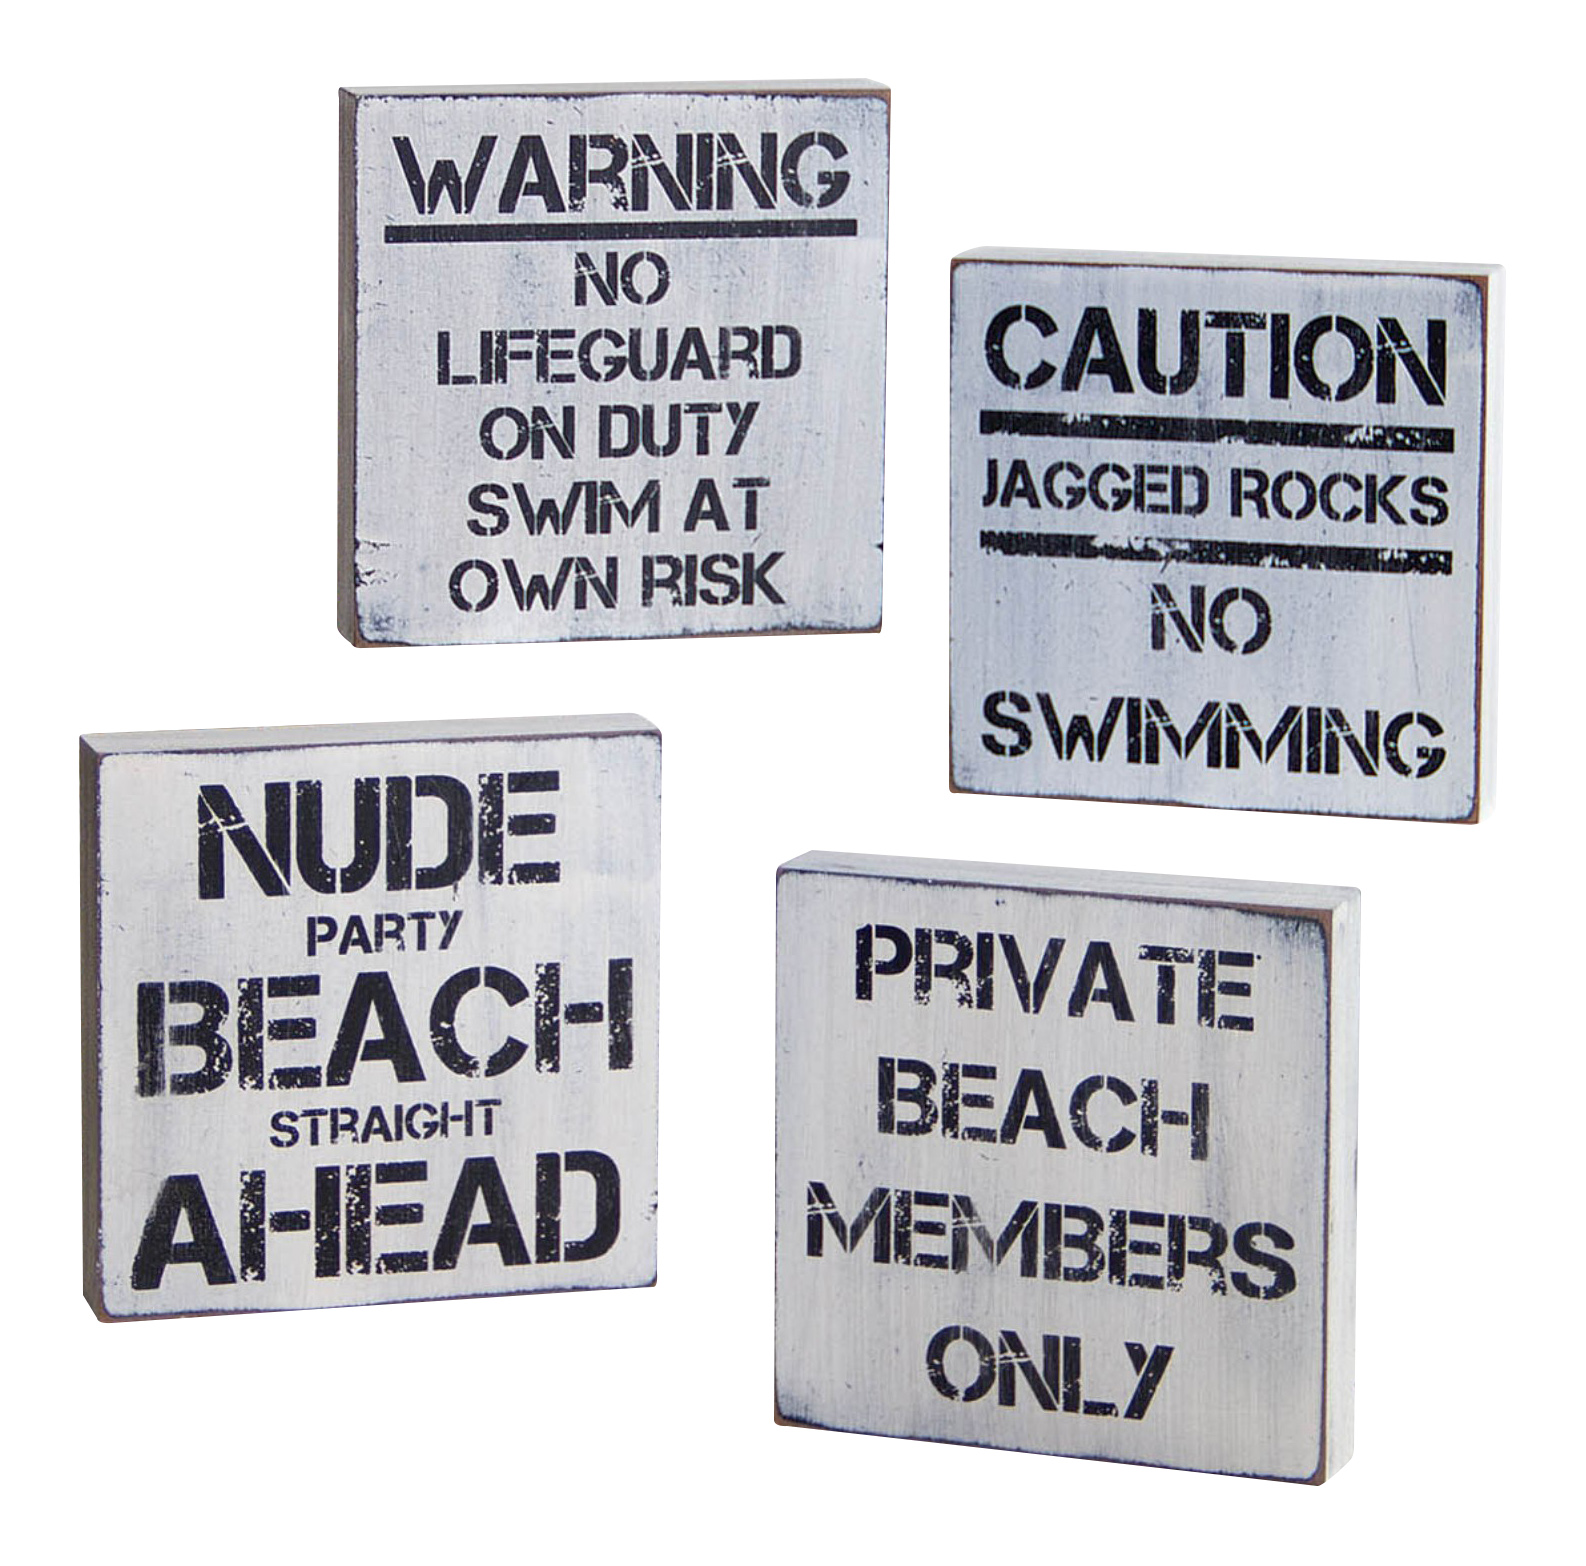 Weathered Wood Nude Beach Lifeguard Warning Signs Set of 4 Wall Tabletop Decor